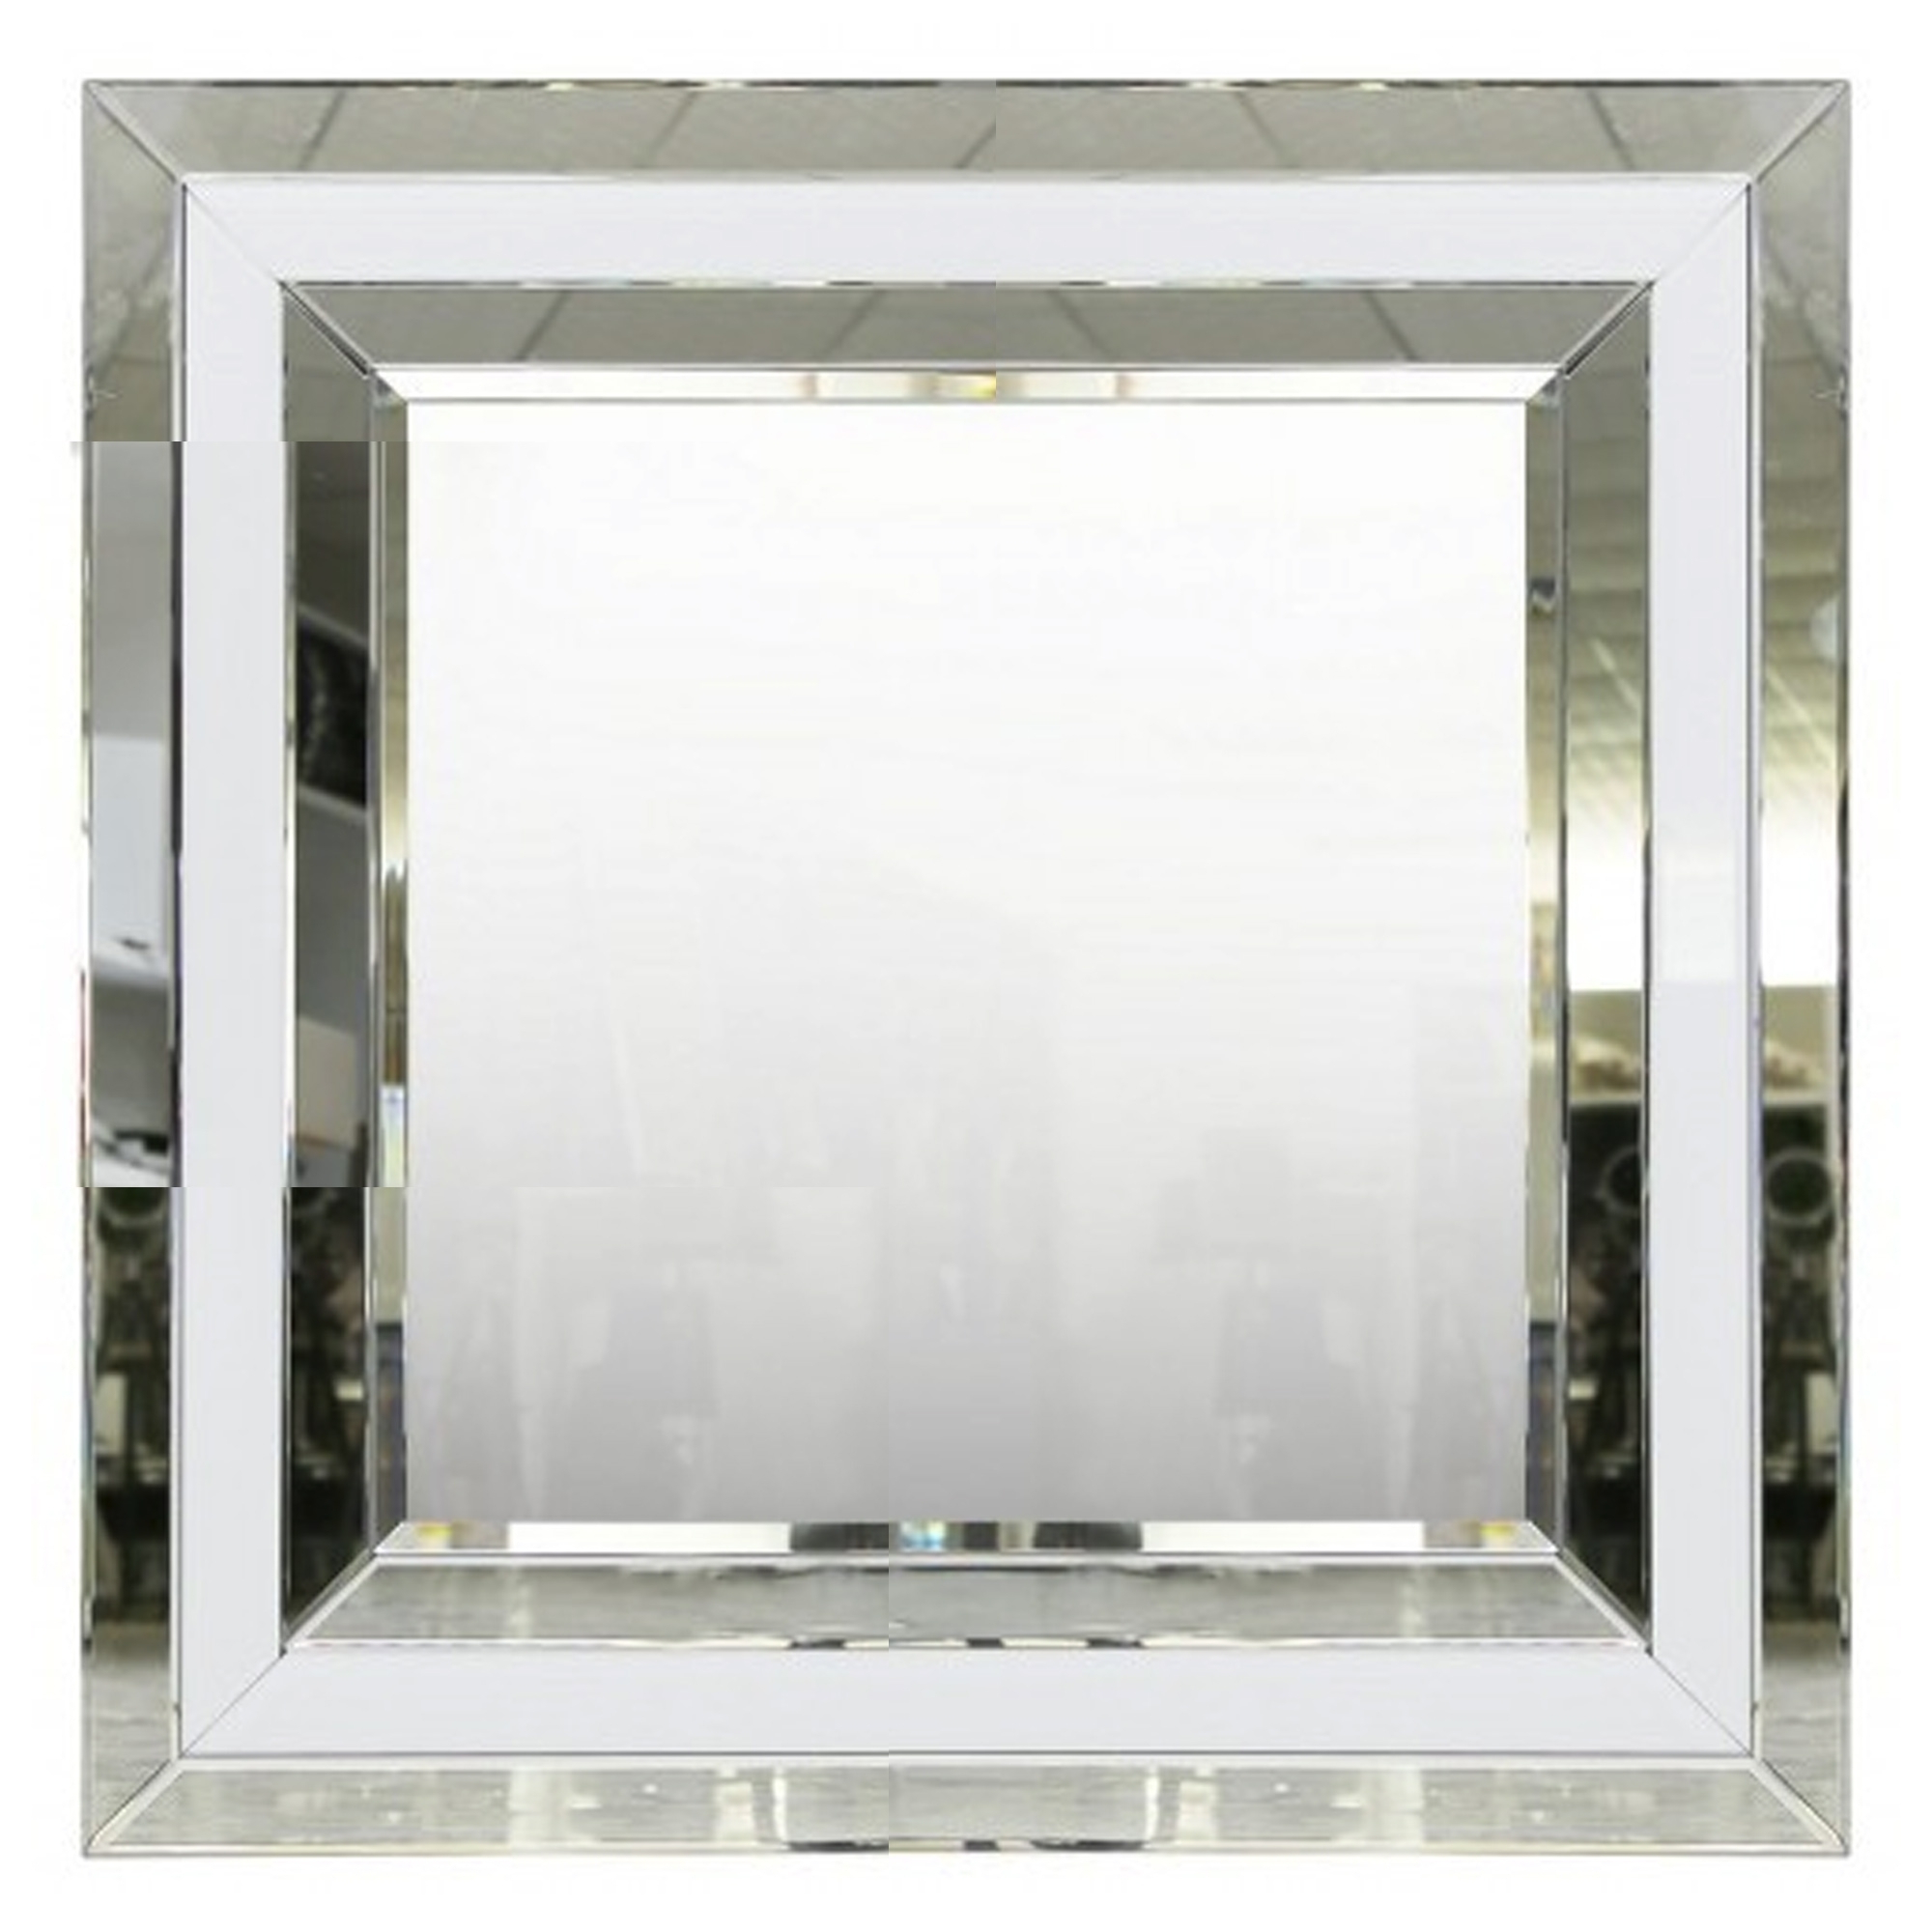 Alghero White Mirrored Square Wall Mirror Throughout Most Up To Date Wall Mirrors (View 7 of 20)